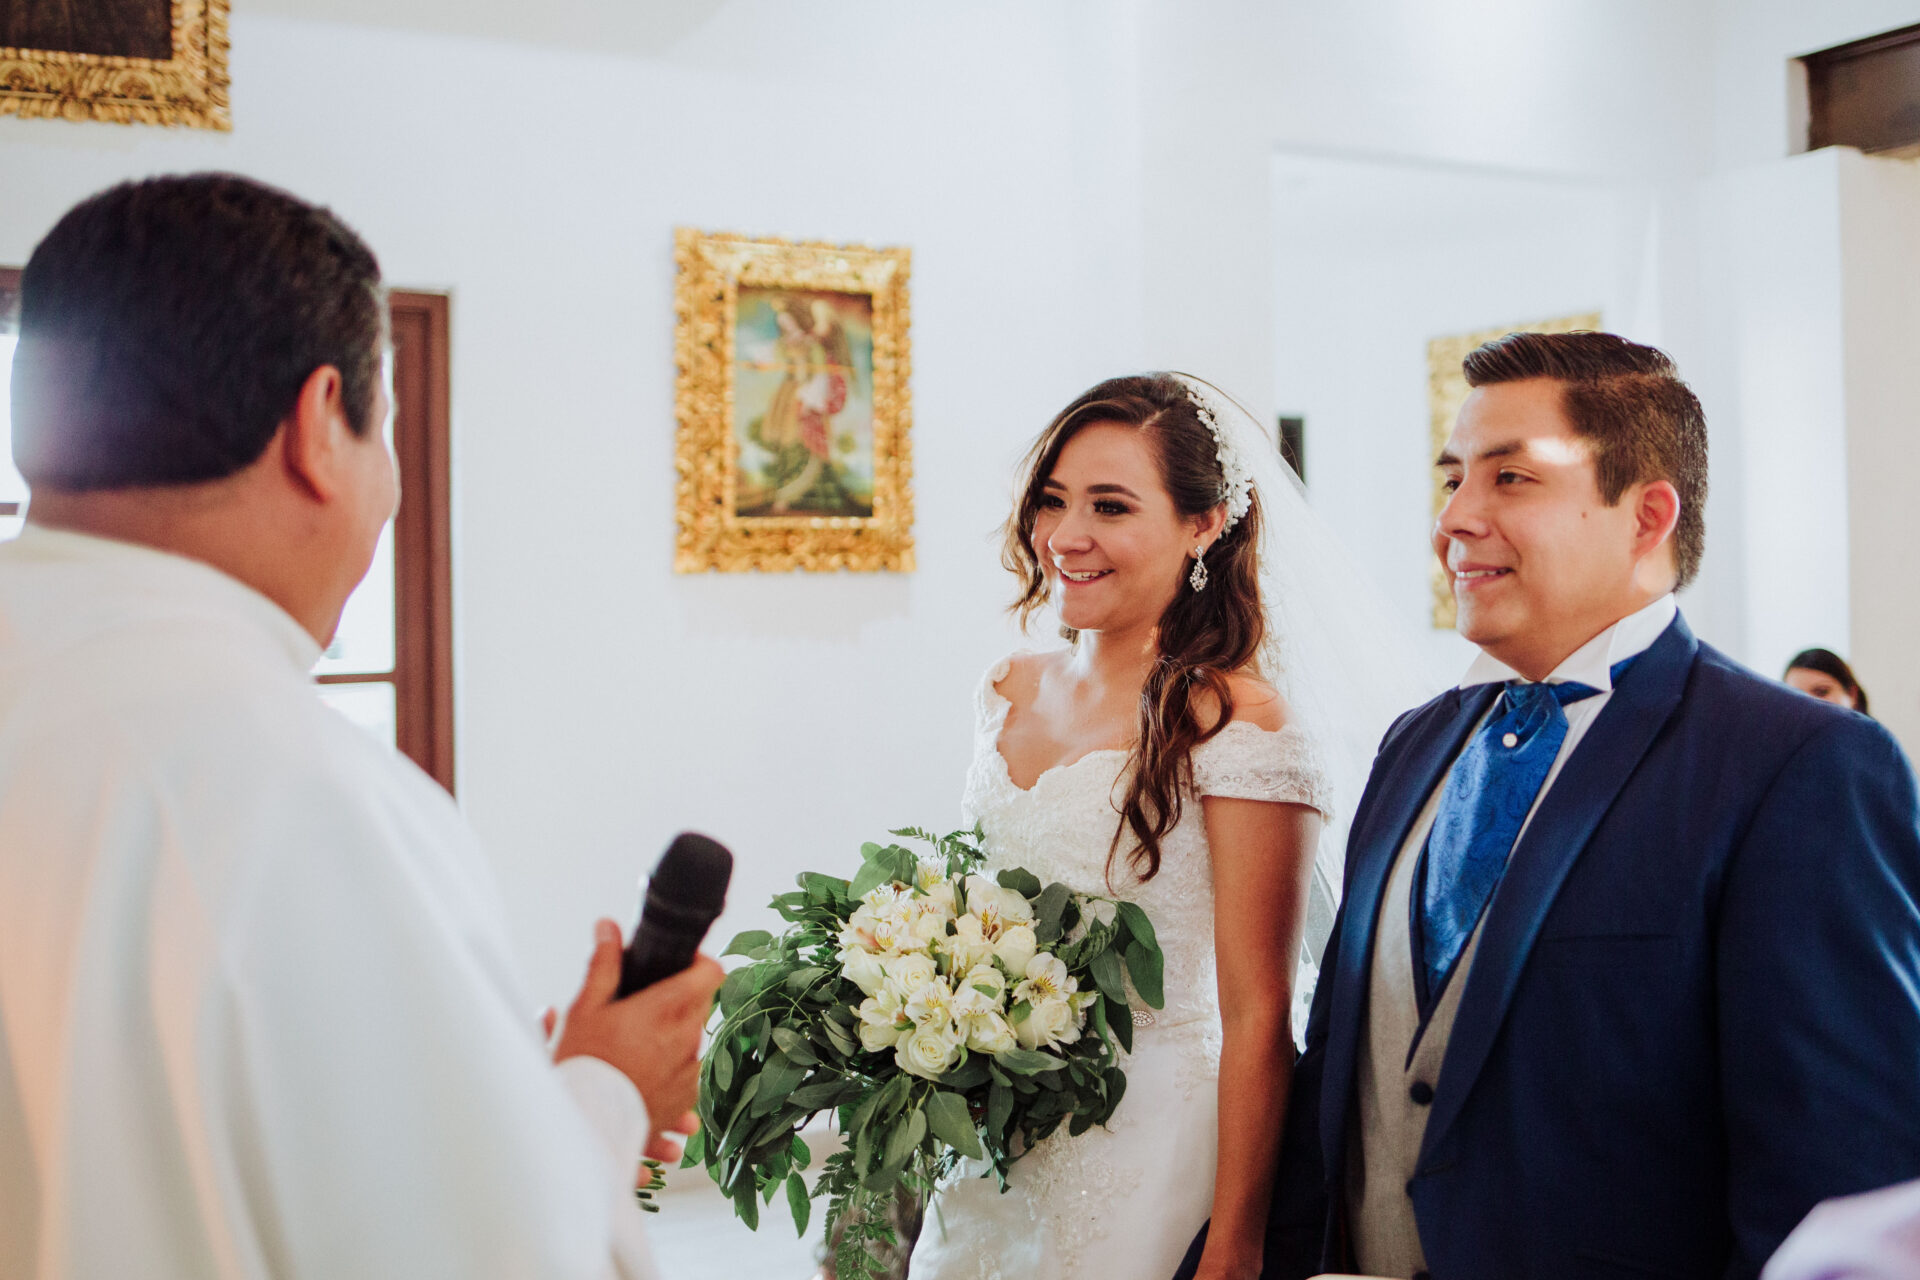 javier_noriega_fotografo_bodas_torreon_coahuila_zacatecas_wedding_photographer29a